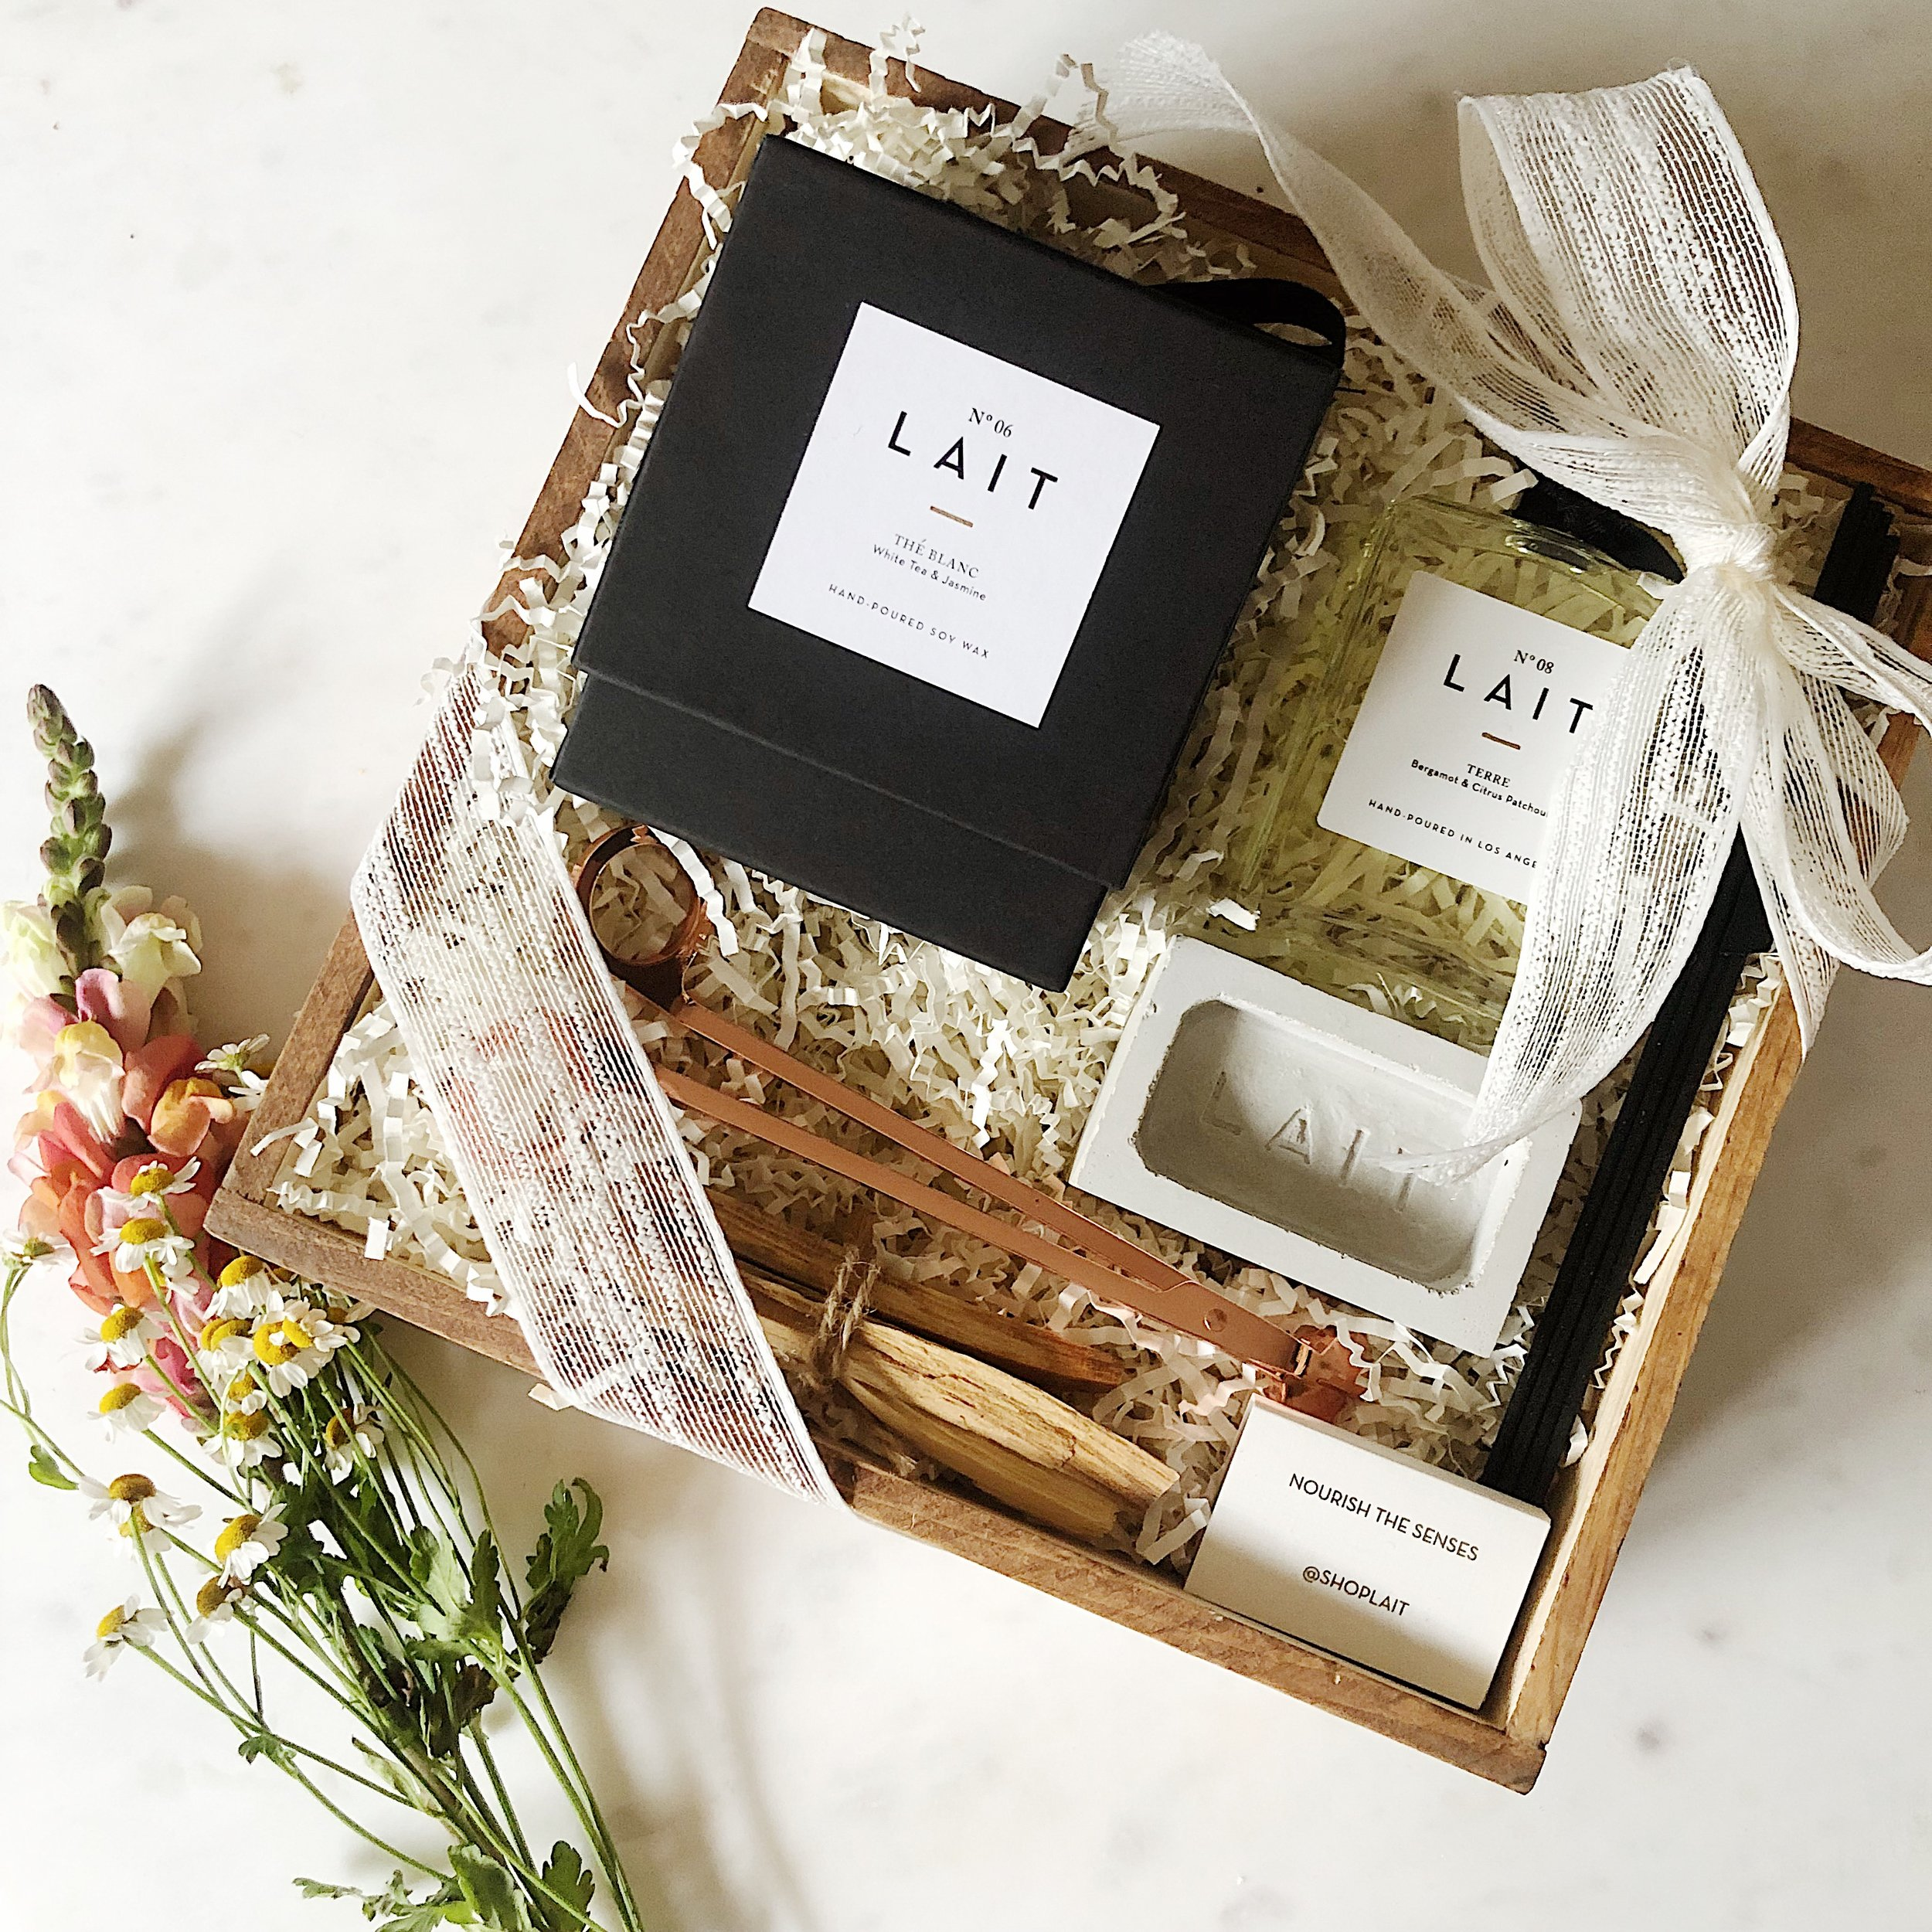 Deluxe Gift Sets - Arrives ready-to-gift in a reusable wooden box, filled with LAIT essentials that you can customize.